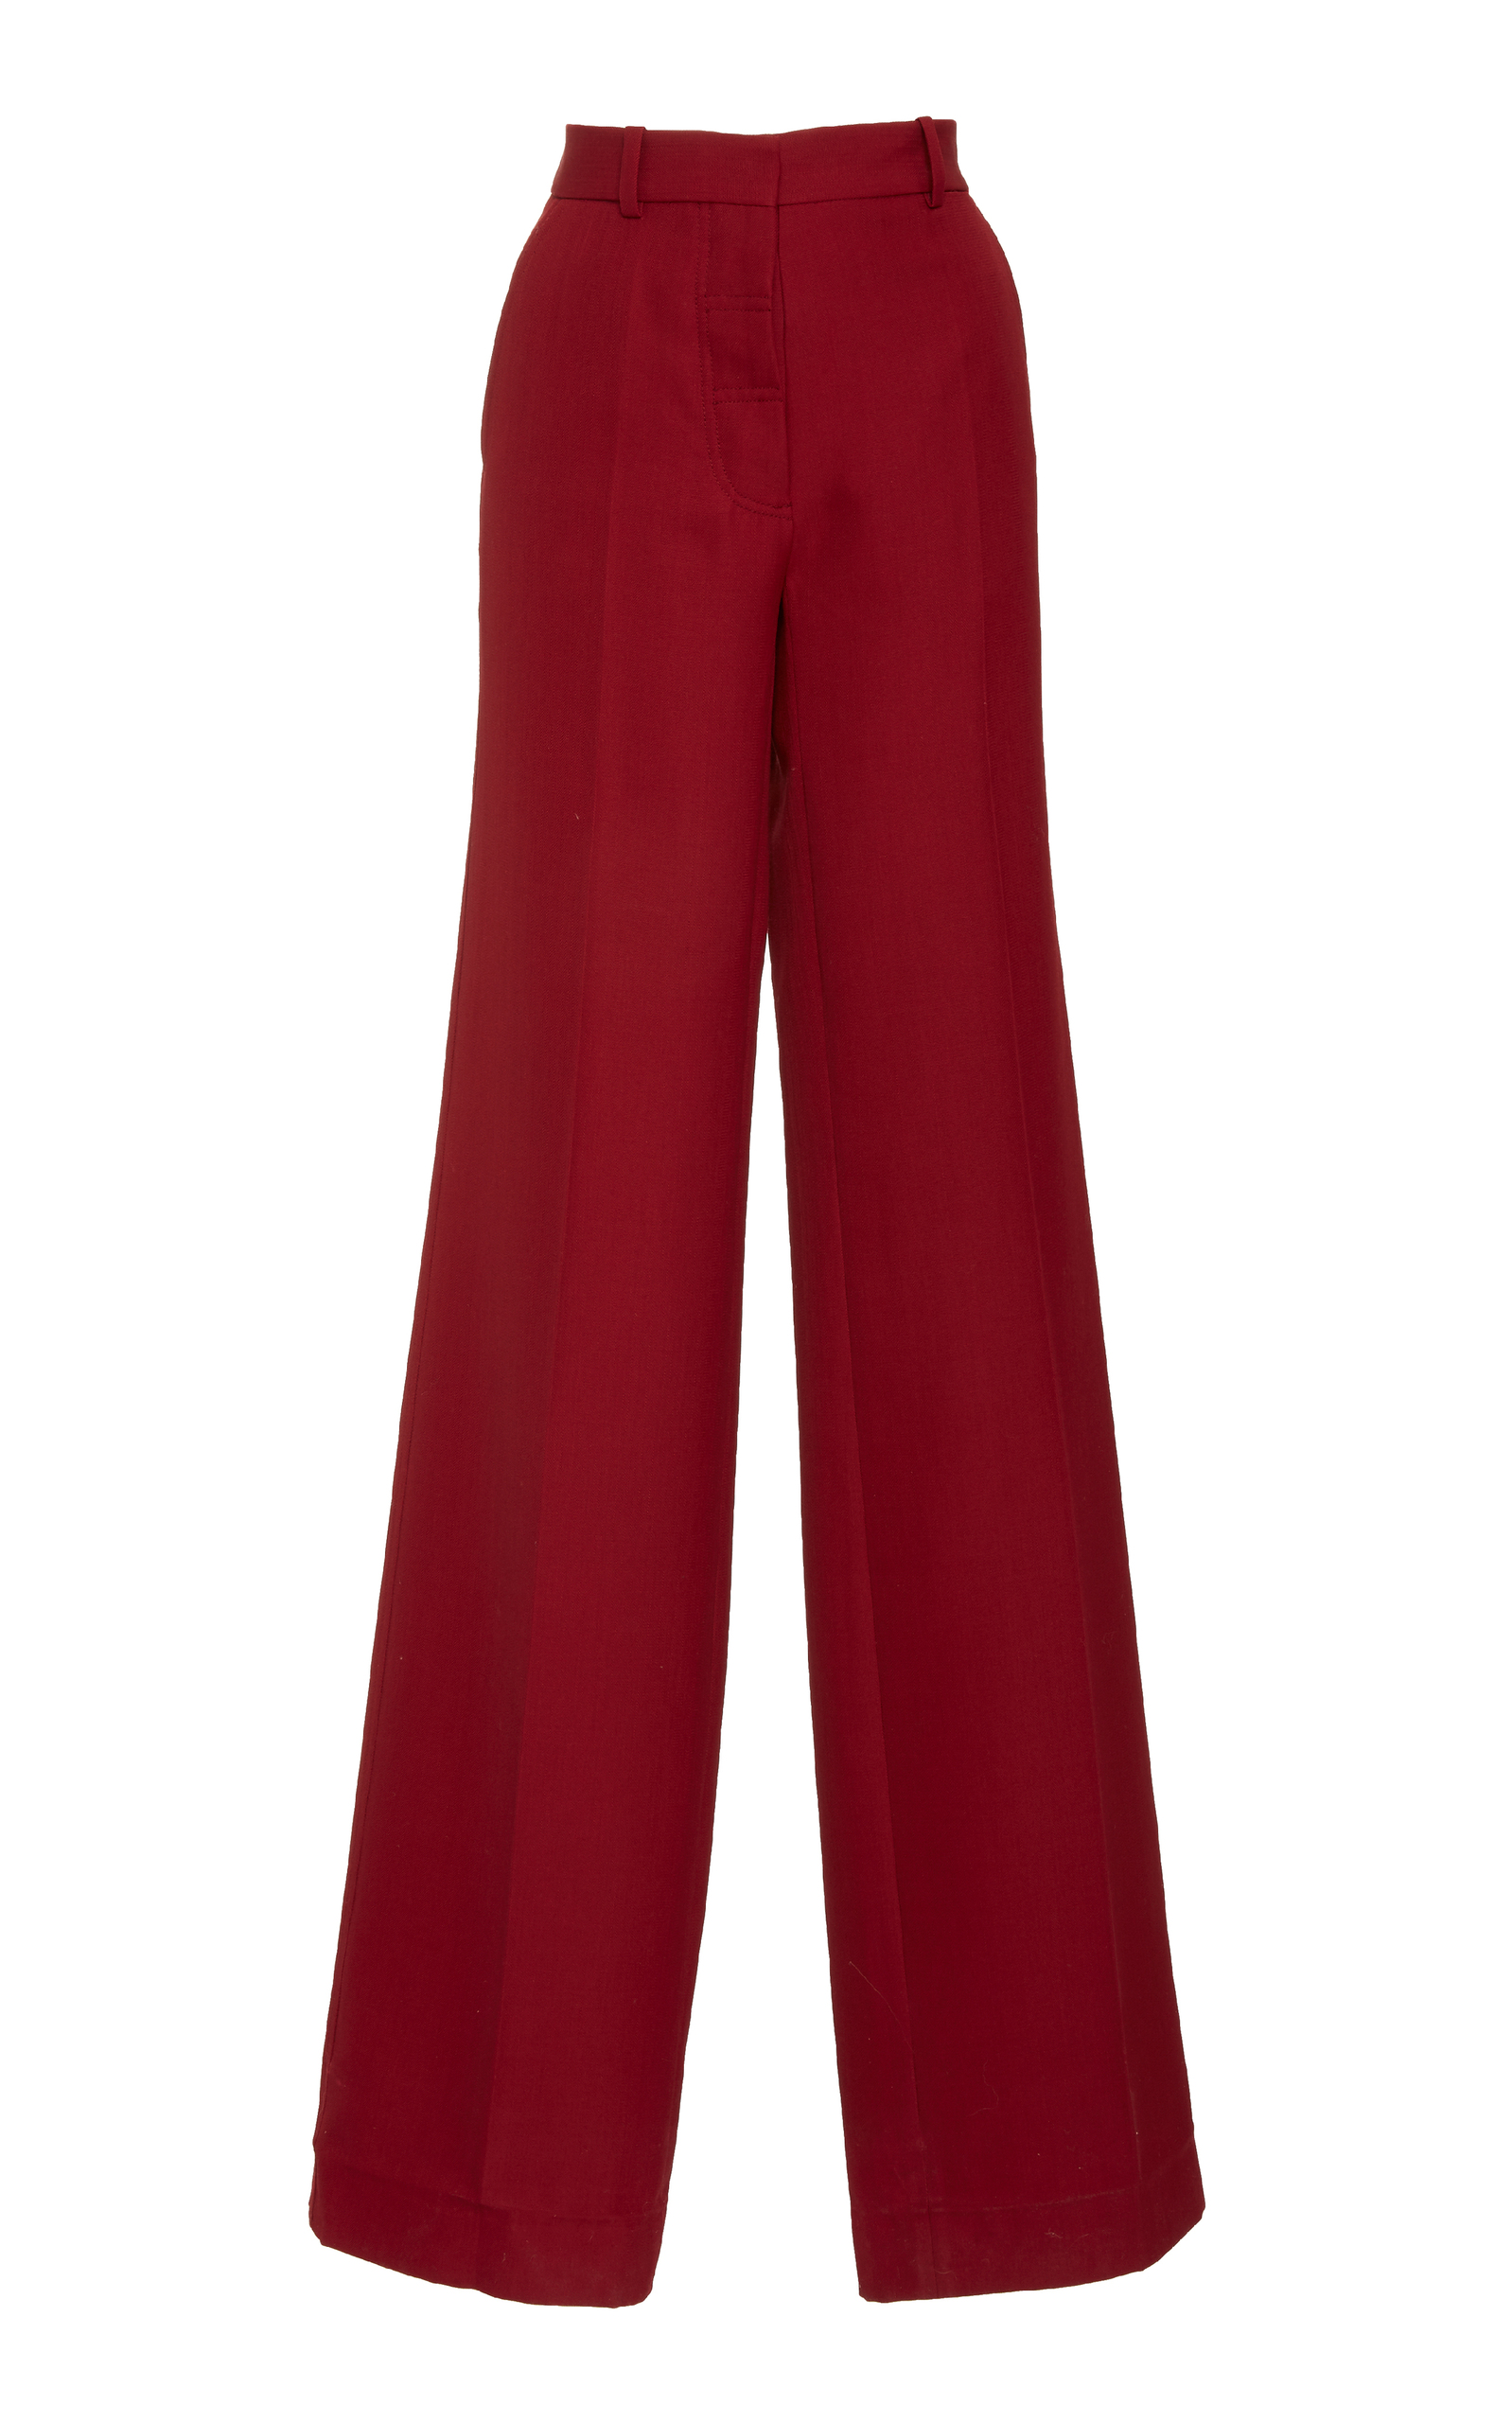 Wide-Leg Trousers - Cherry Size 10 Uk in Burgundy